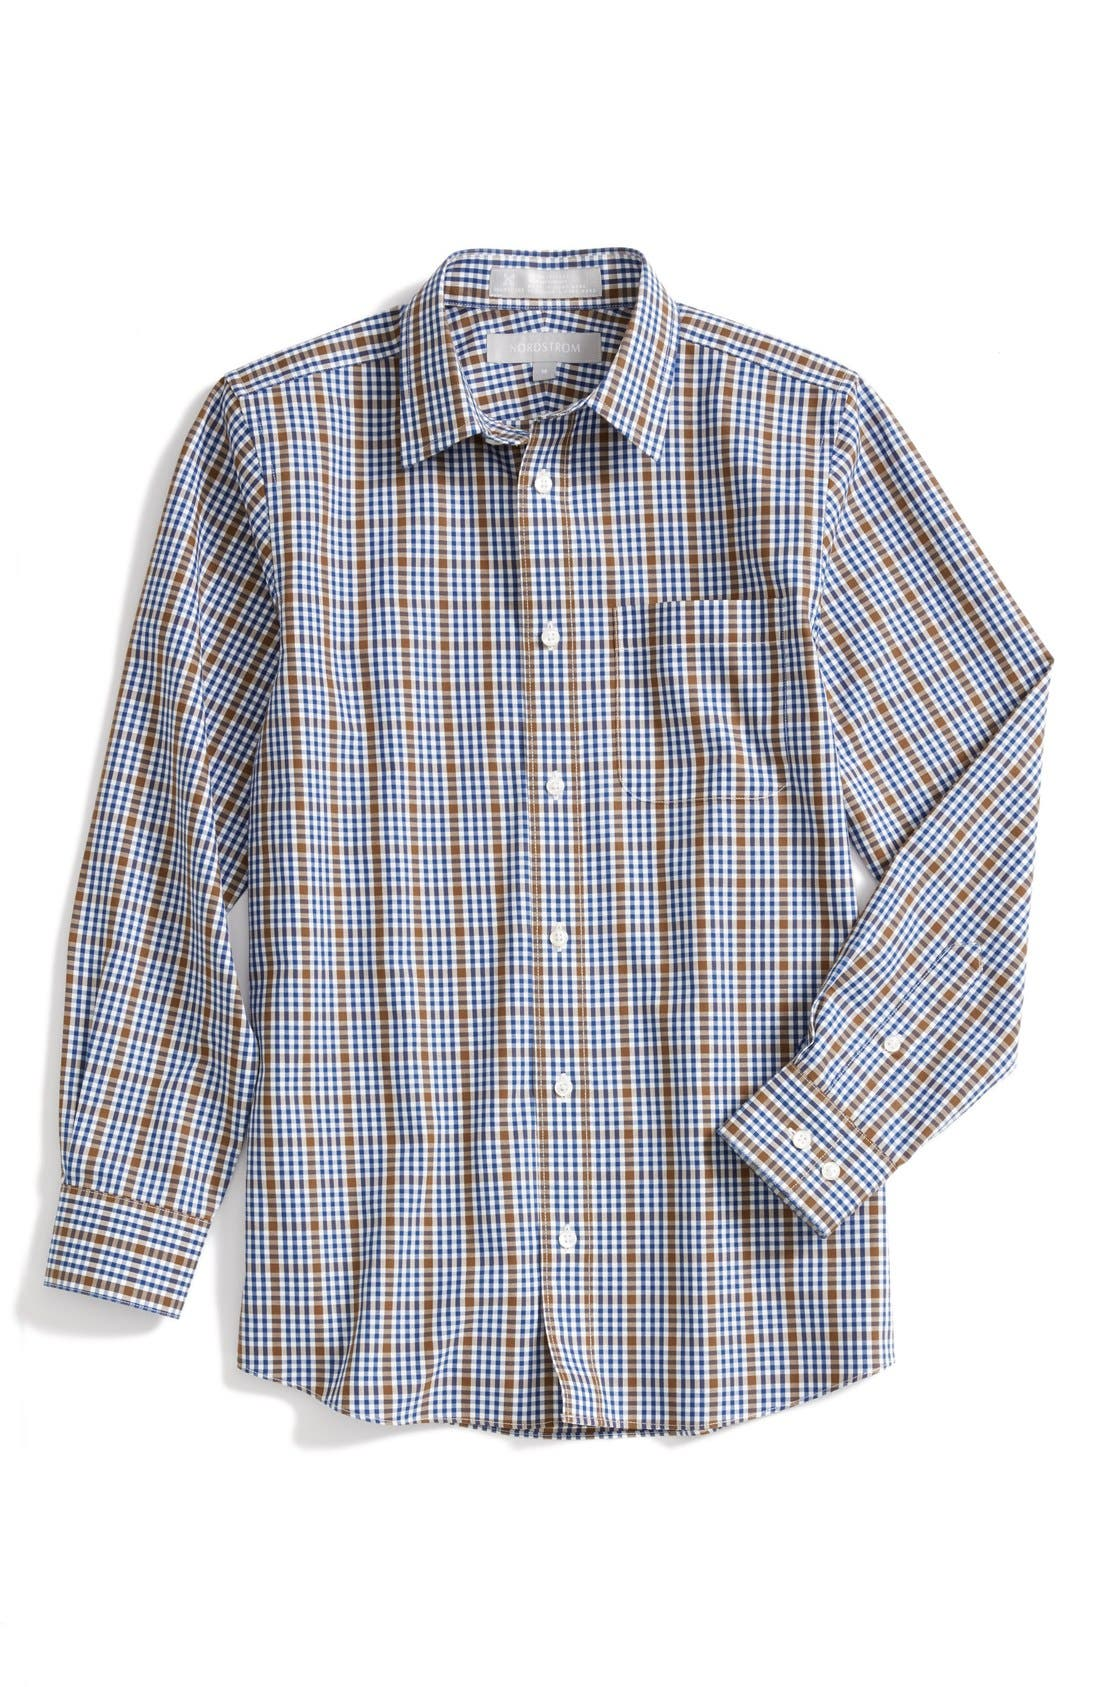 Alternate Image 1 Selected - Nordstrom Smartcare™ Dress Shirt (Little Boys & Big Boys)